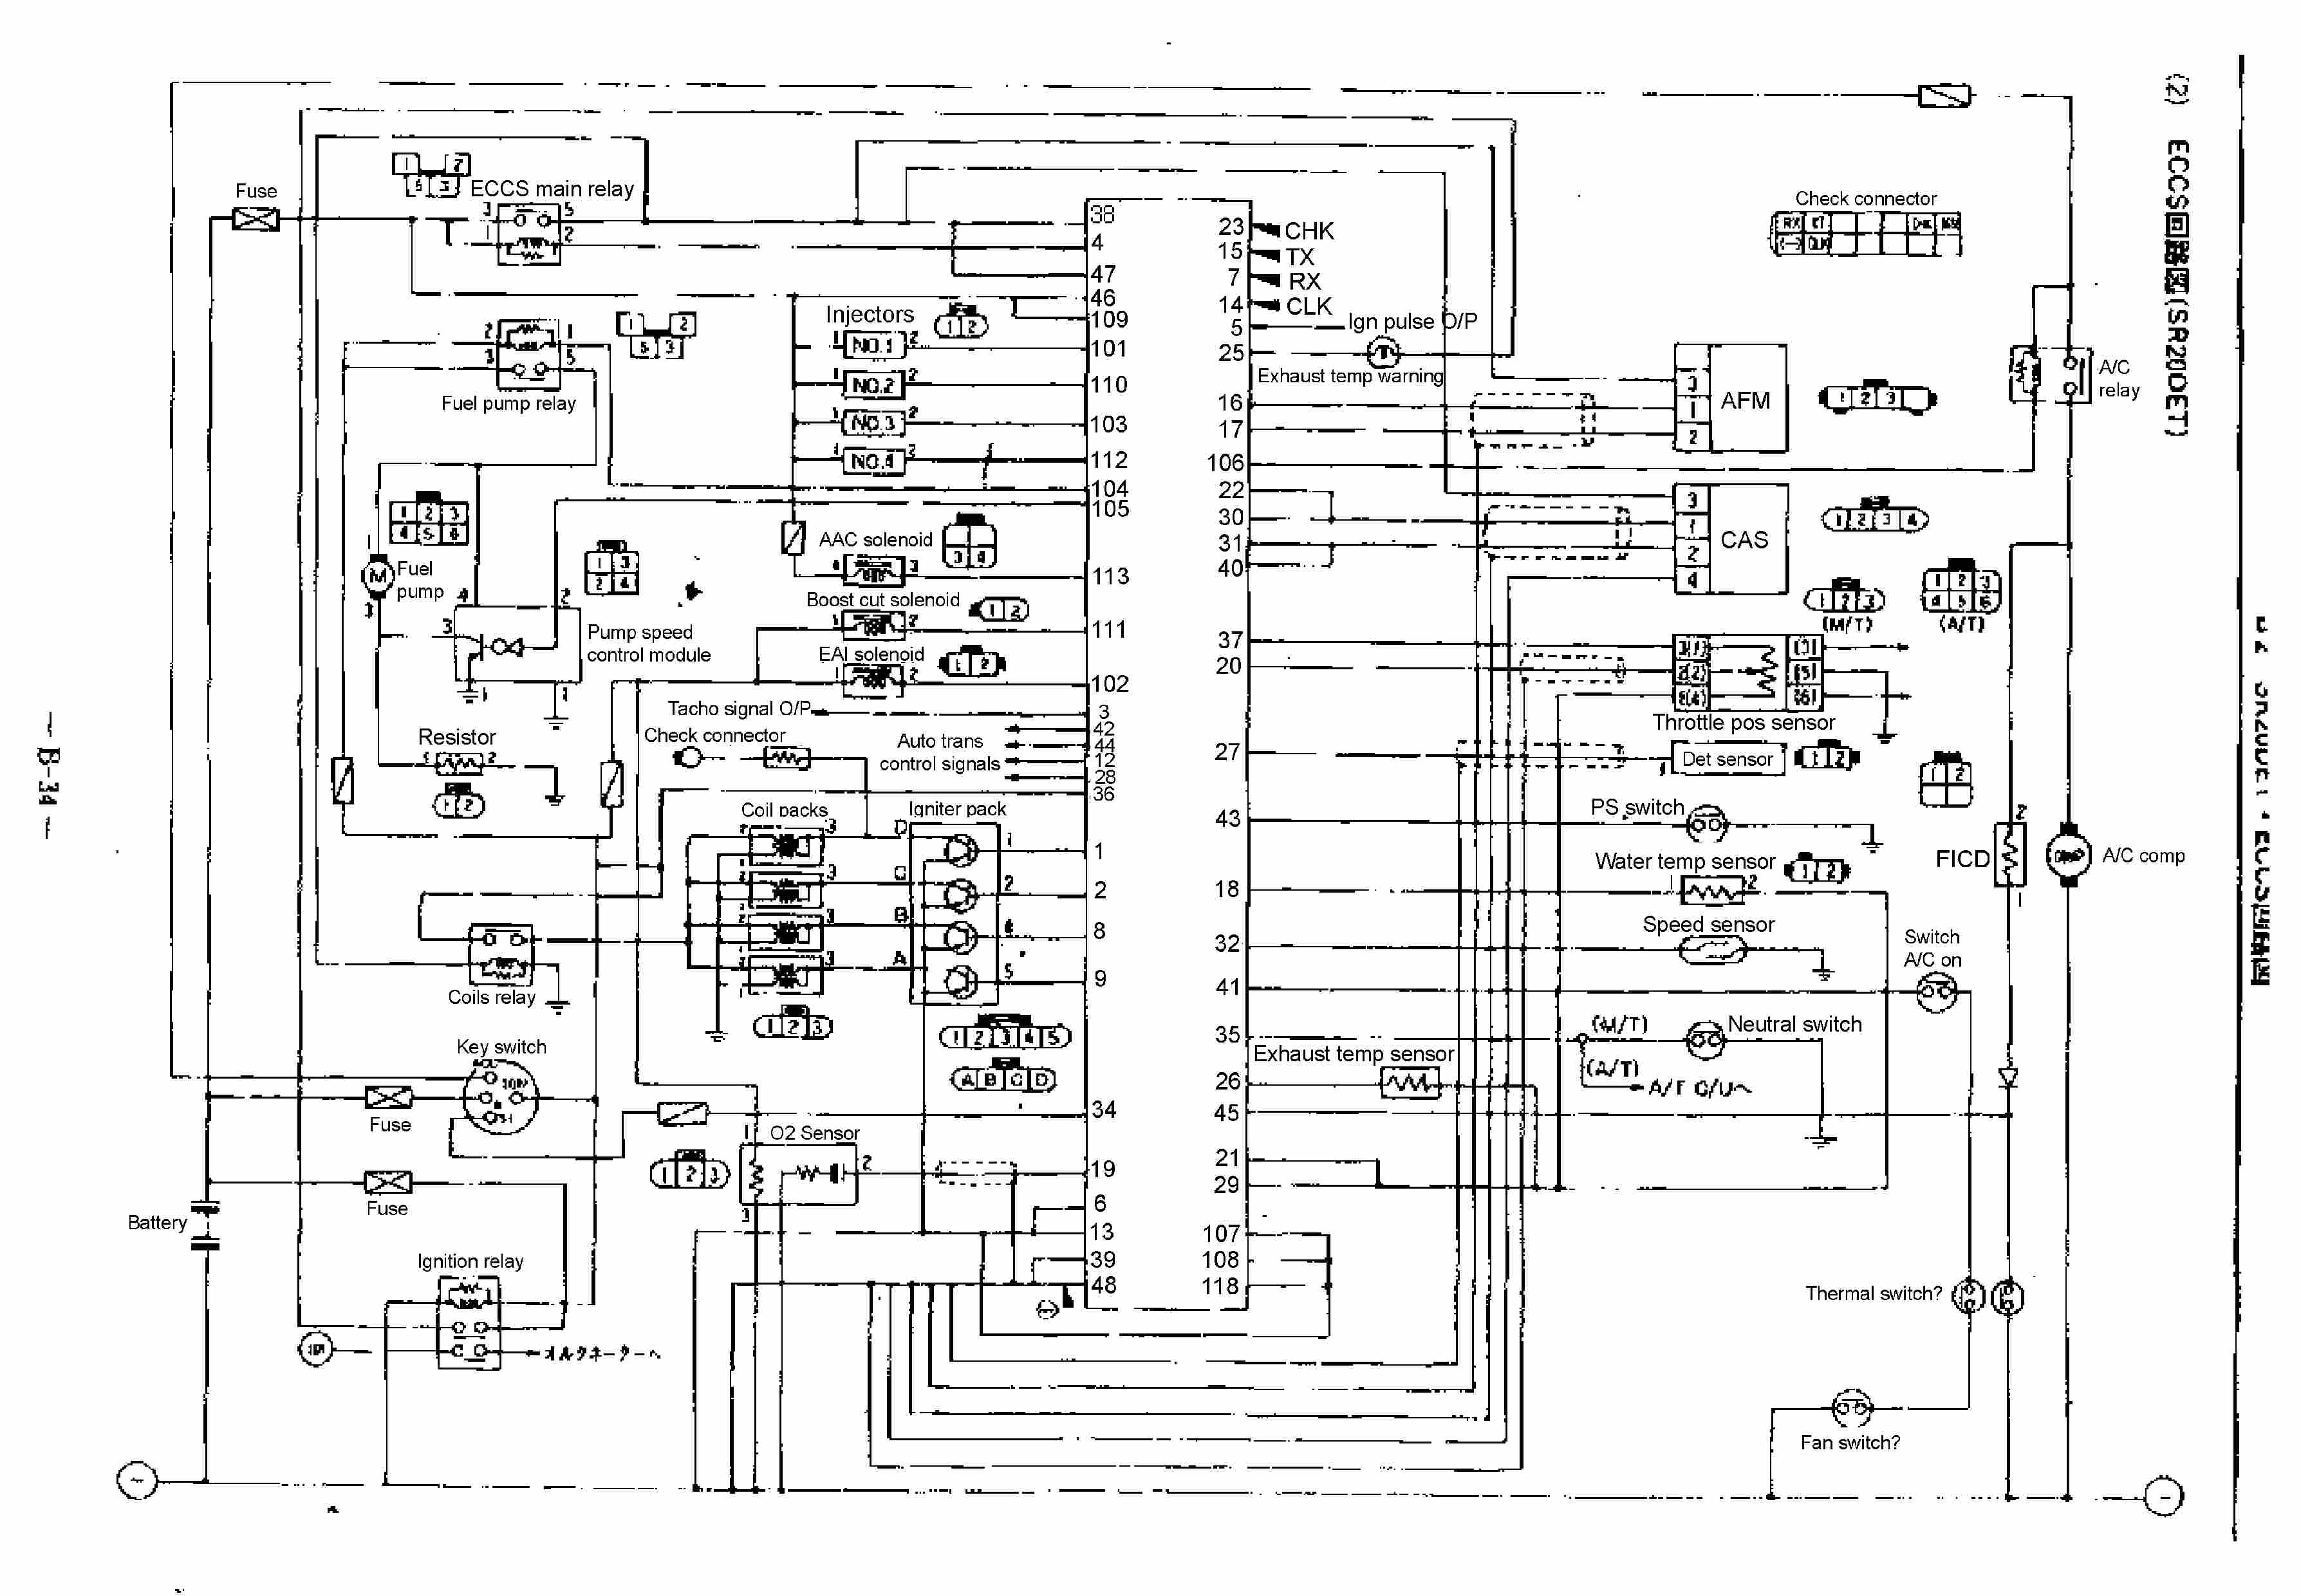 2012 Liberty Fuse Box Simple Guide About Wiring Diagram 93 Jeep Nissan Car Manuals Diagrams Pdf Fault Codes Interior